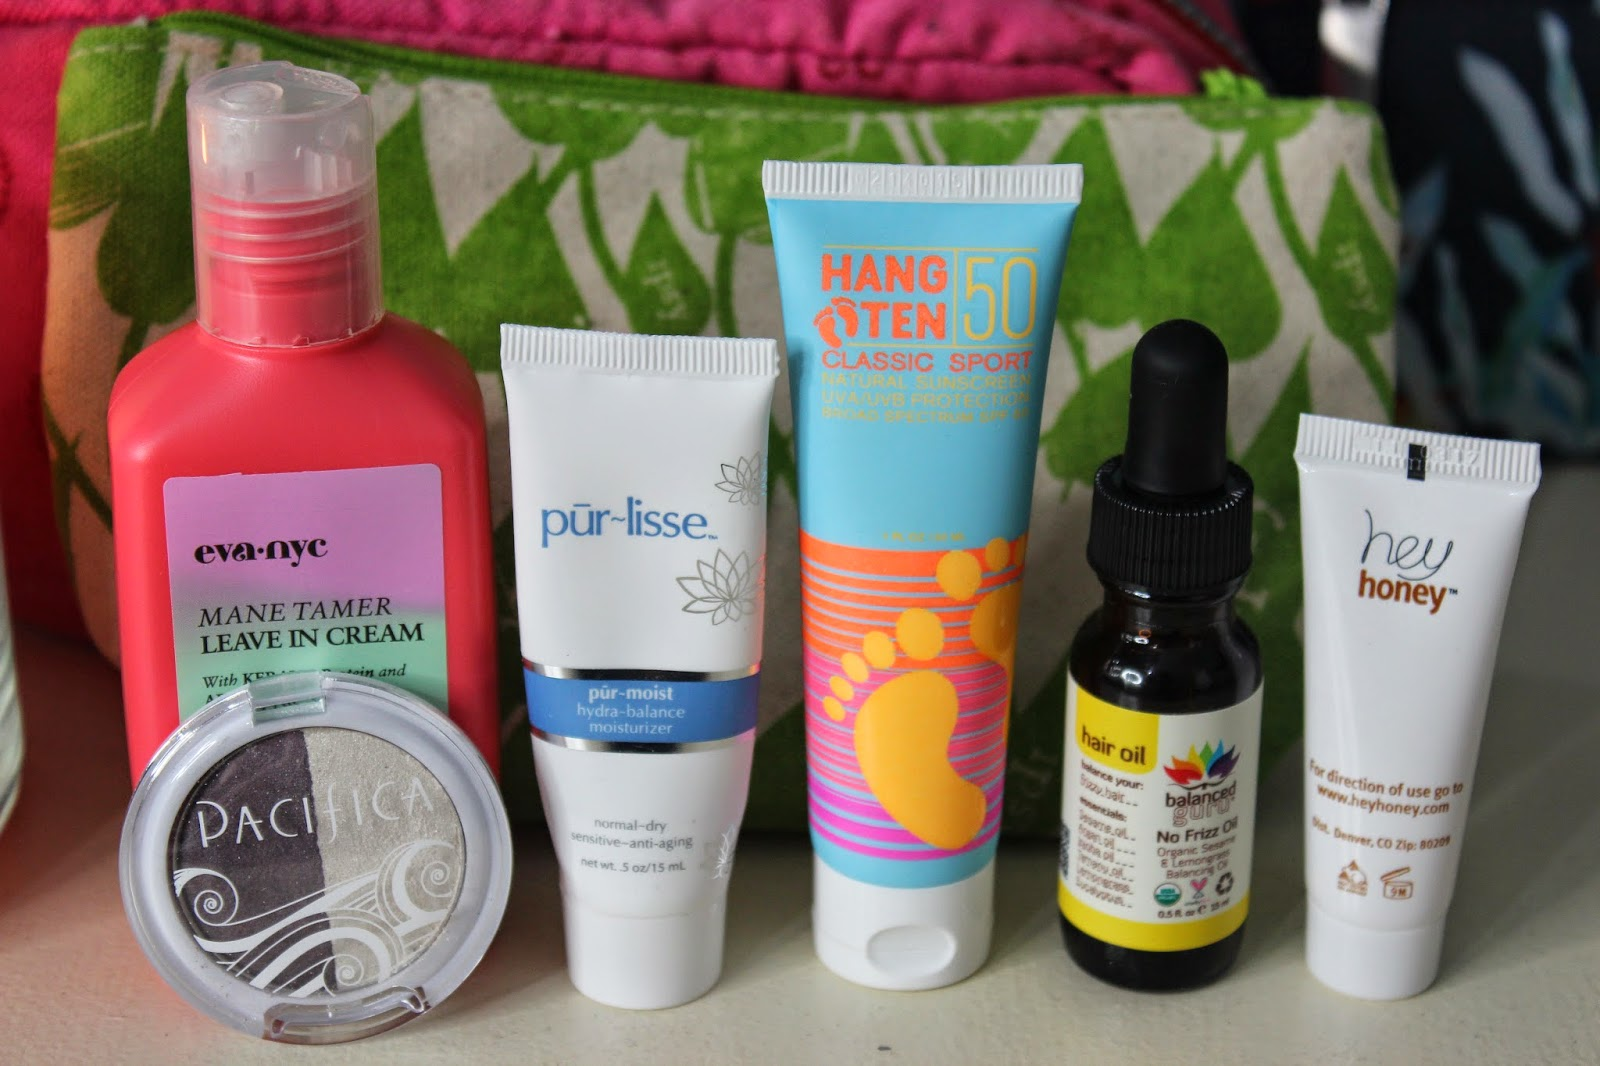 ipsy bag, tipsy, beauty bag, beauty subscription, unboxing, review, june bag, may bag, beauty, skincare, makeup, haircare